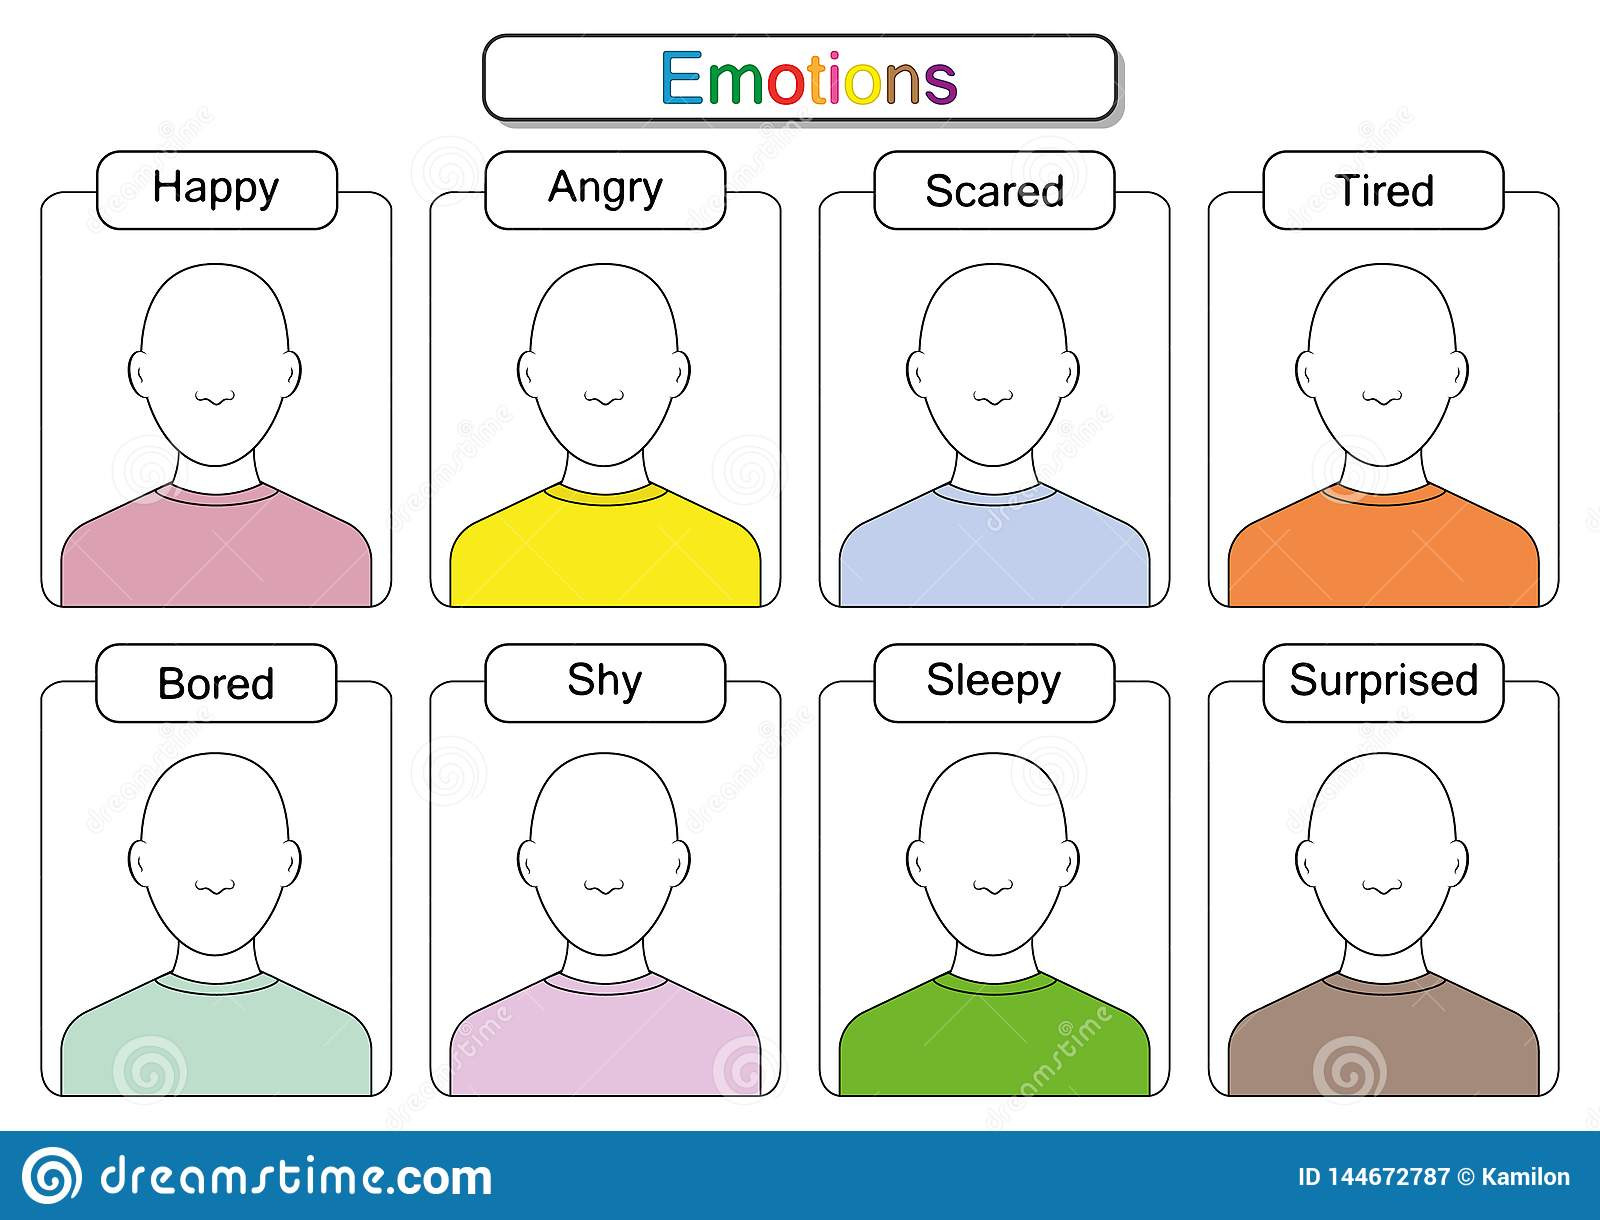 Emotions Worksheets for Preschoolers Children are Learning Emotions Draw the Faces Draw the